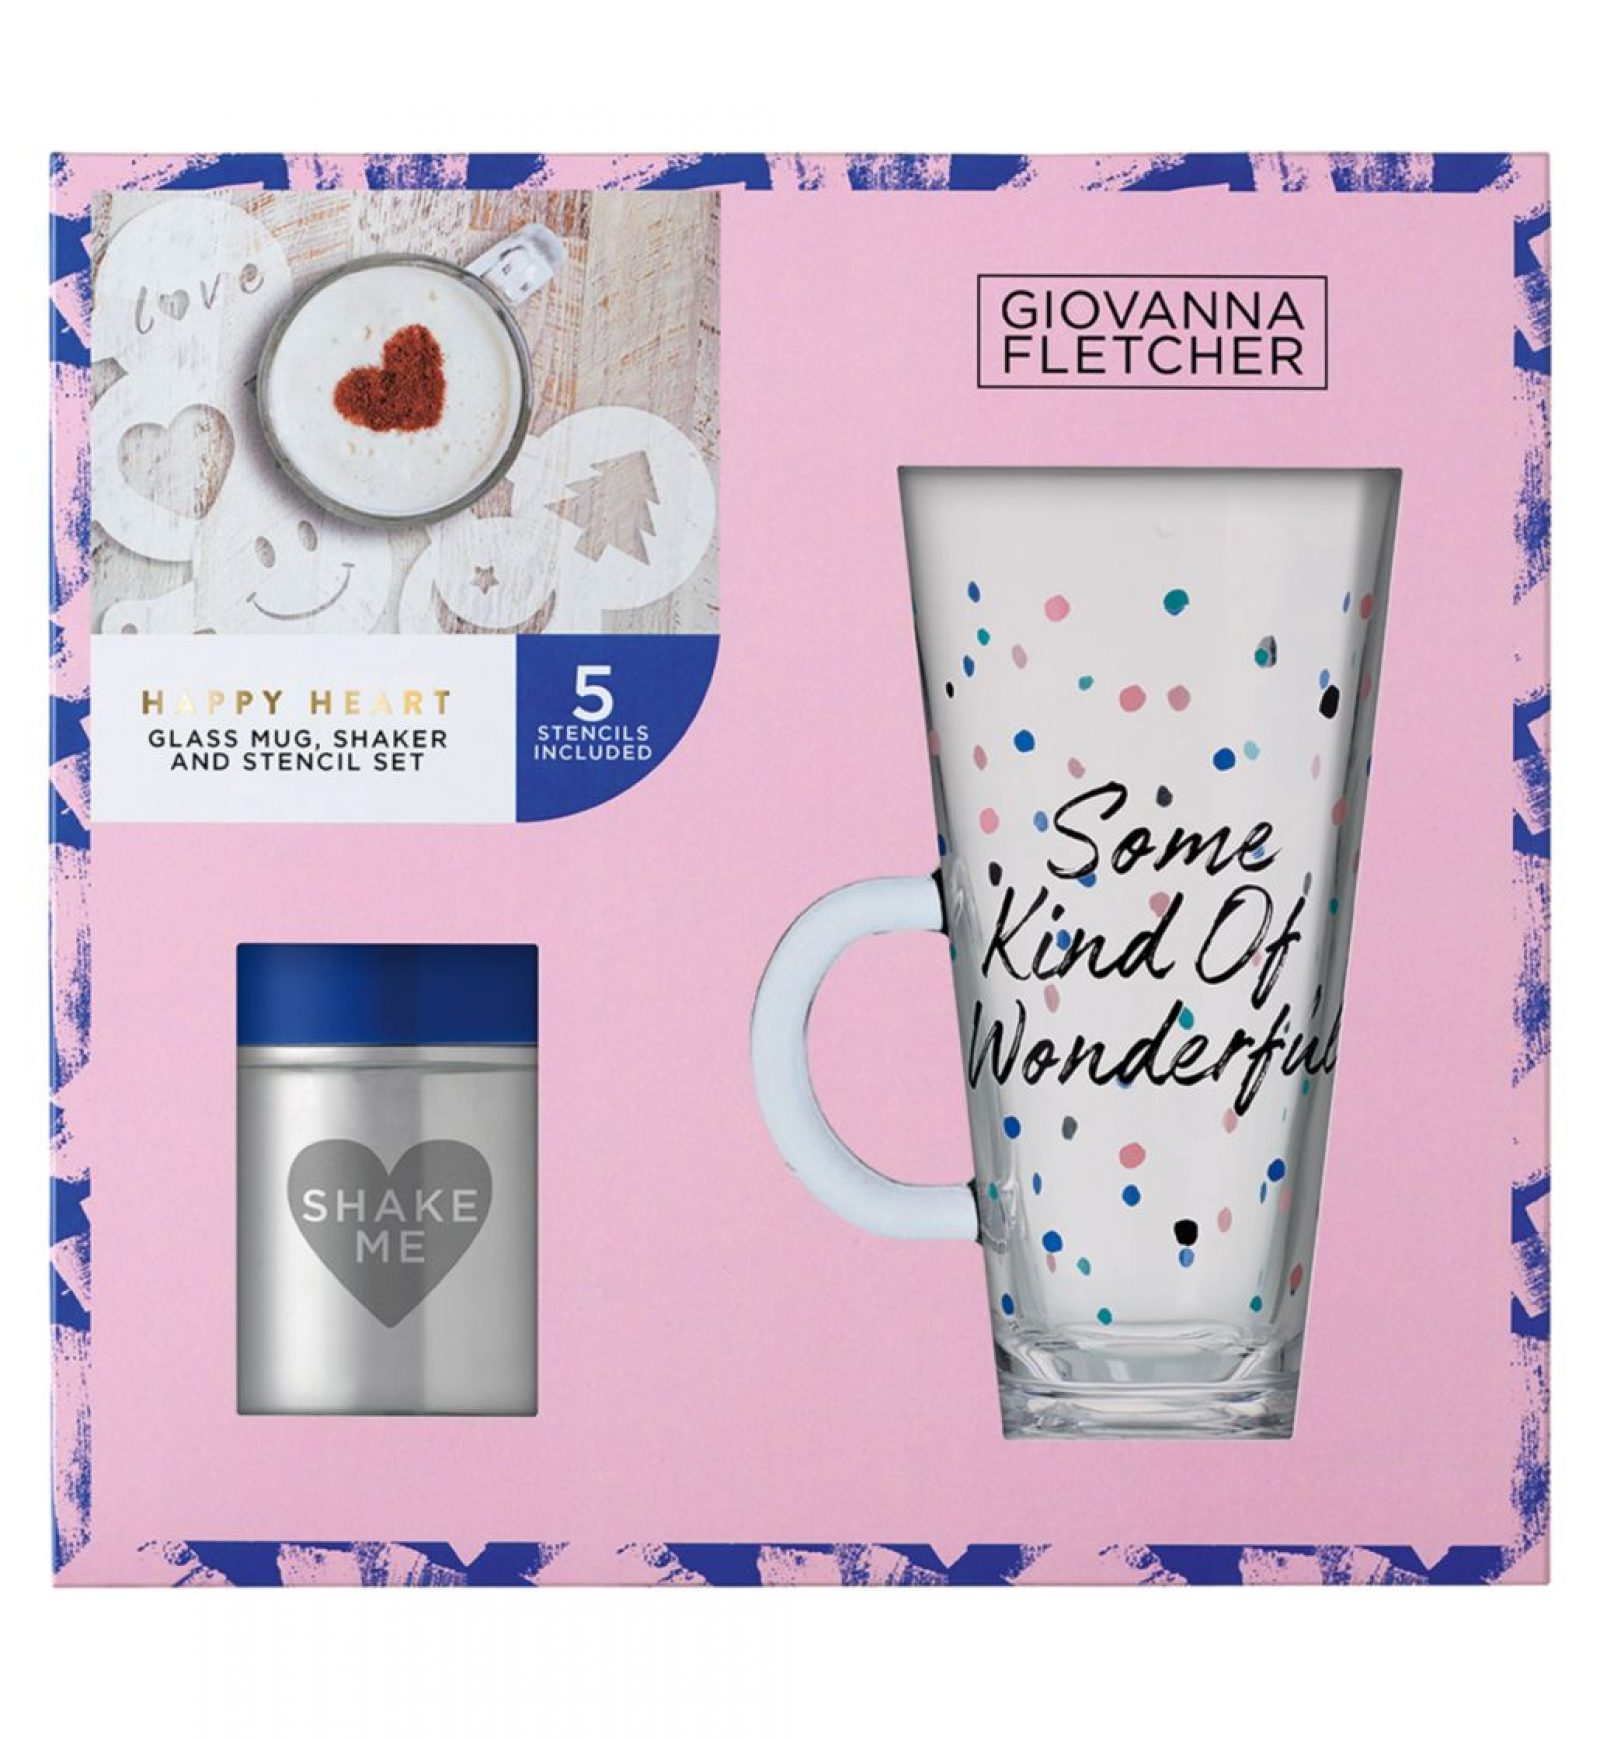 My Wellbeing Range at Boots